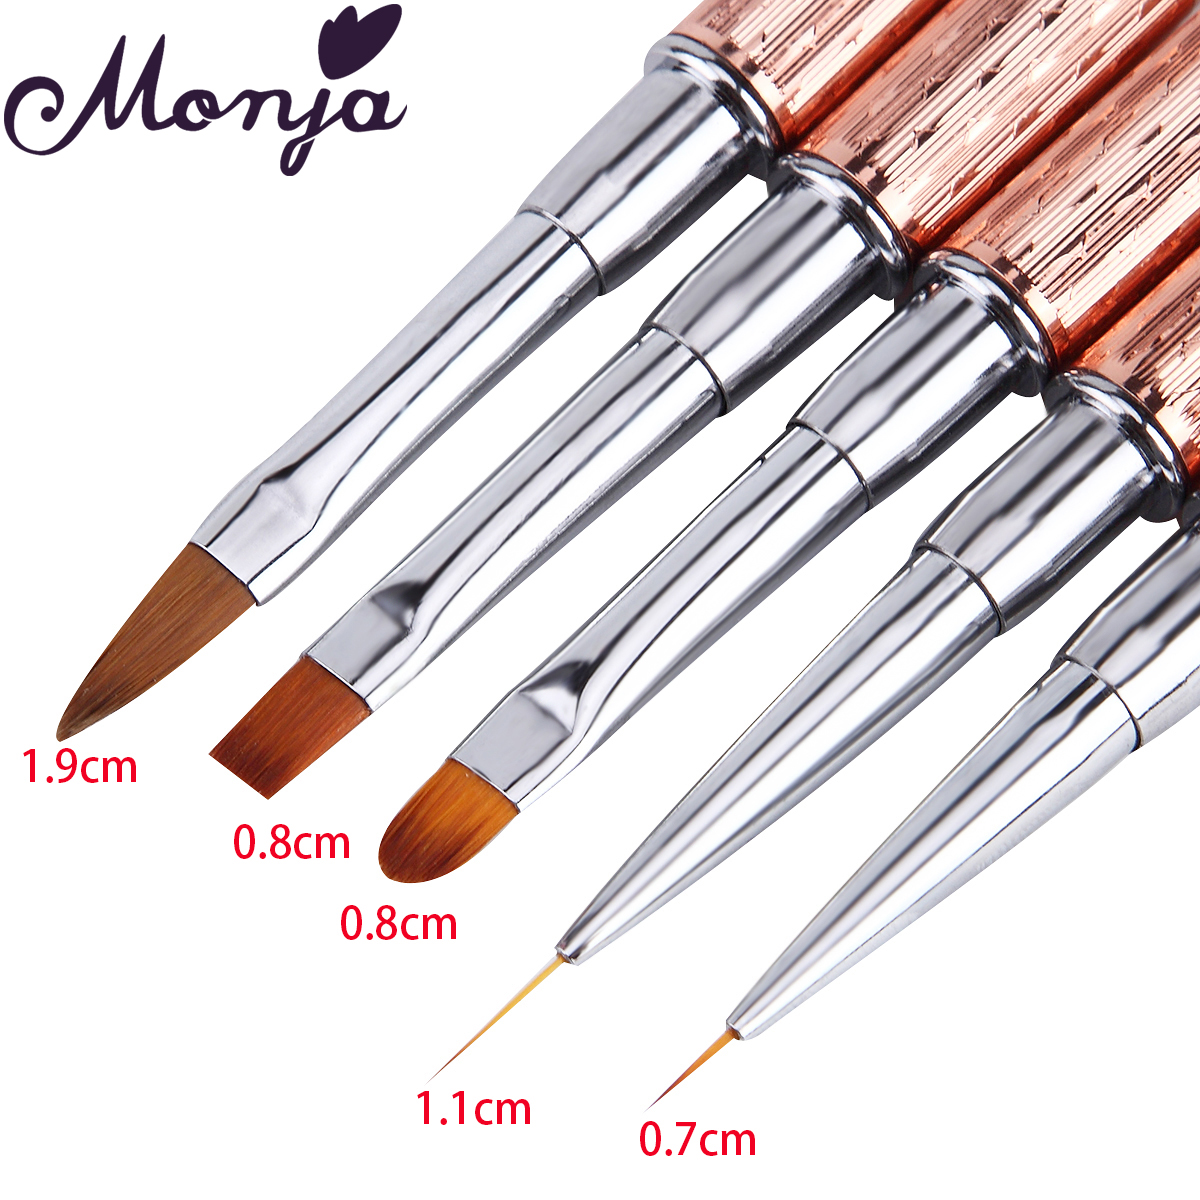 Monja Nail Art Brush Made Of Acrylic Rhinestone Handle Material For Nail Liner Brush Tool 1